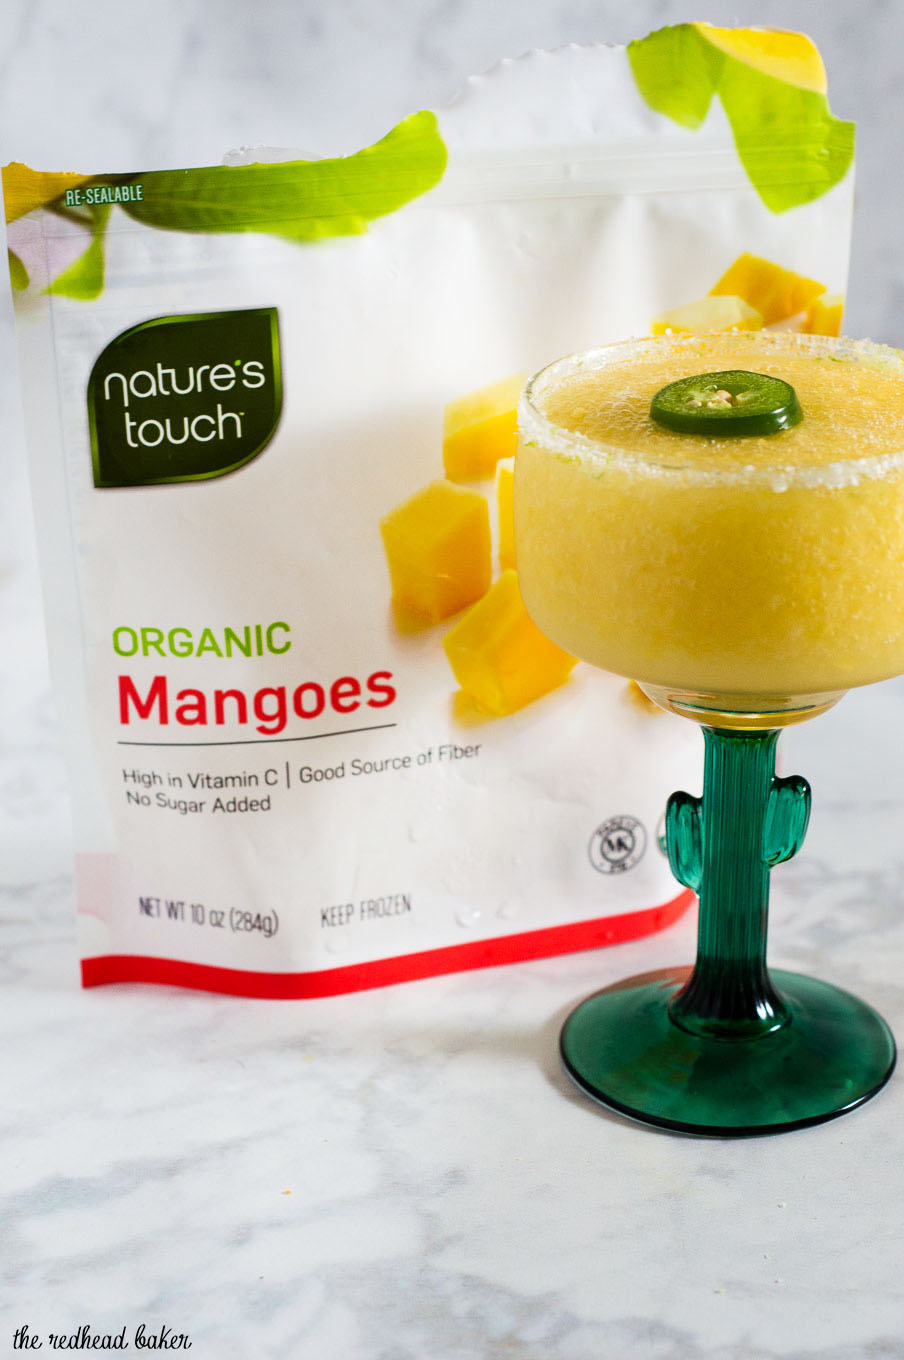 Get a Taste of Adventure with frozen mango jalapeno margaritas! Blend Nature's Touch organic mango with jalapeno-infused tequila, triple sec and lime juice. #FlavorAdventure #ad